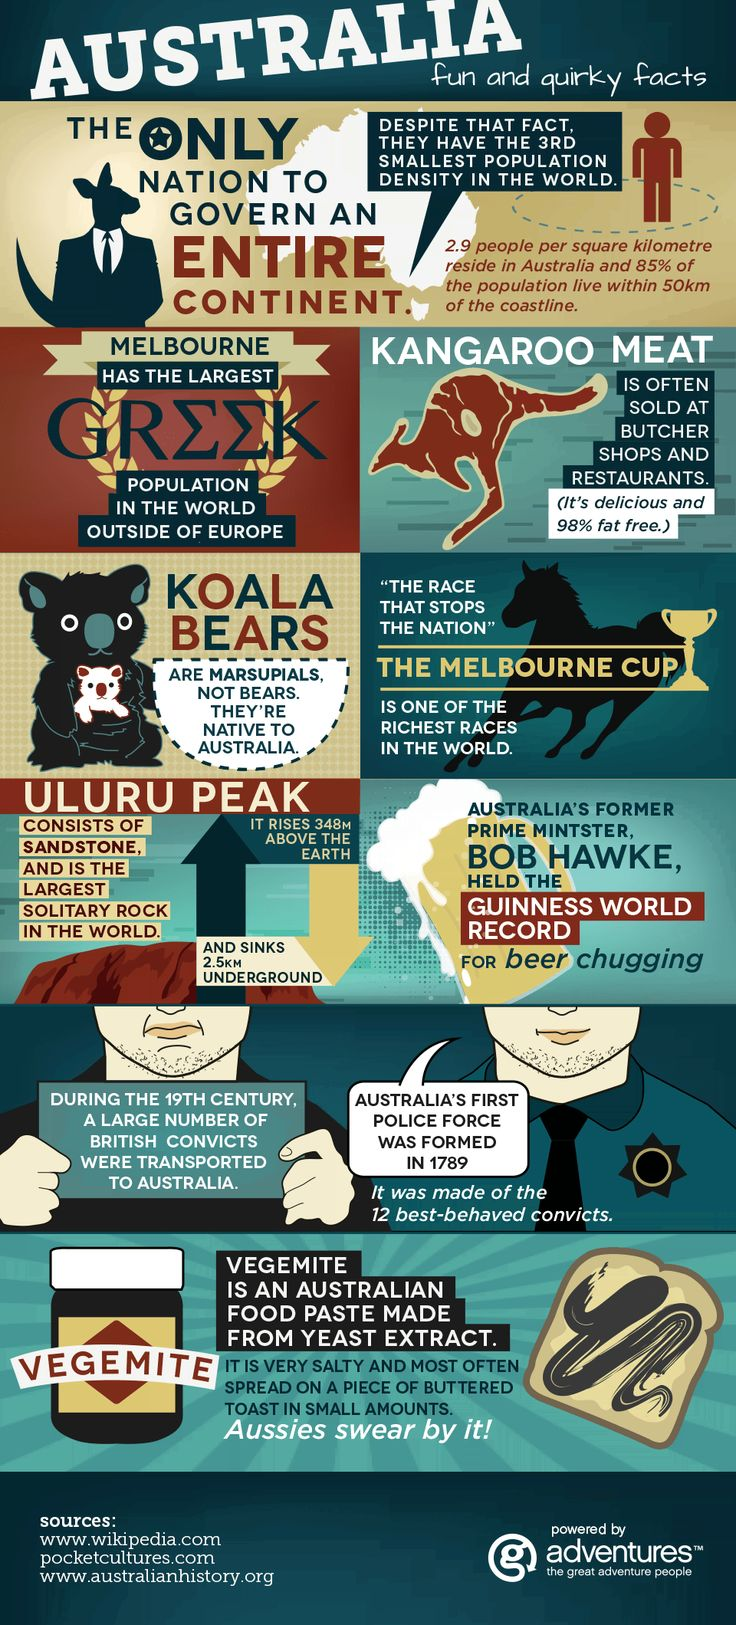 Australia (My Second Home)|Australia Fun Facts Infographic|Source:dauntlessjauntler.com|-Lol...I found the facts on this infographic quite funny, but from what I can remember from being told quite true.